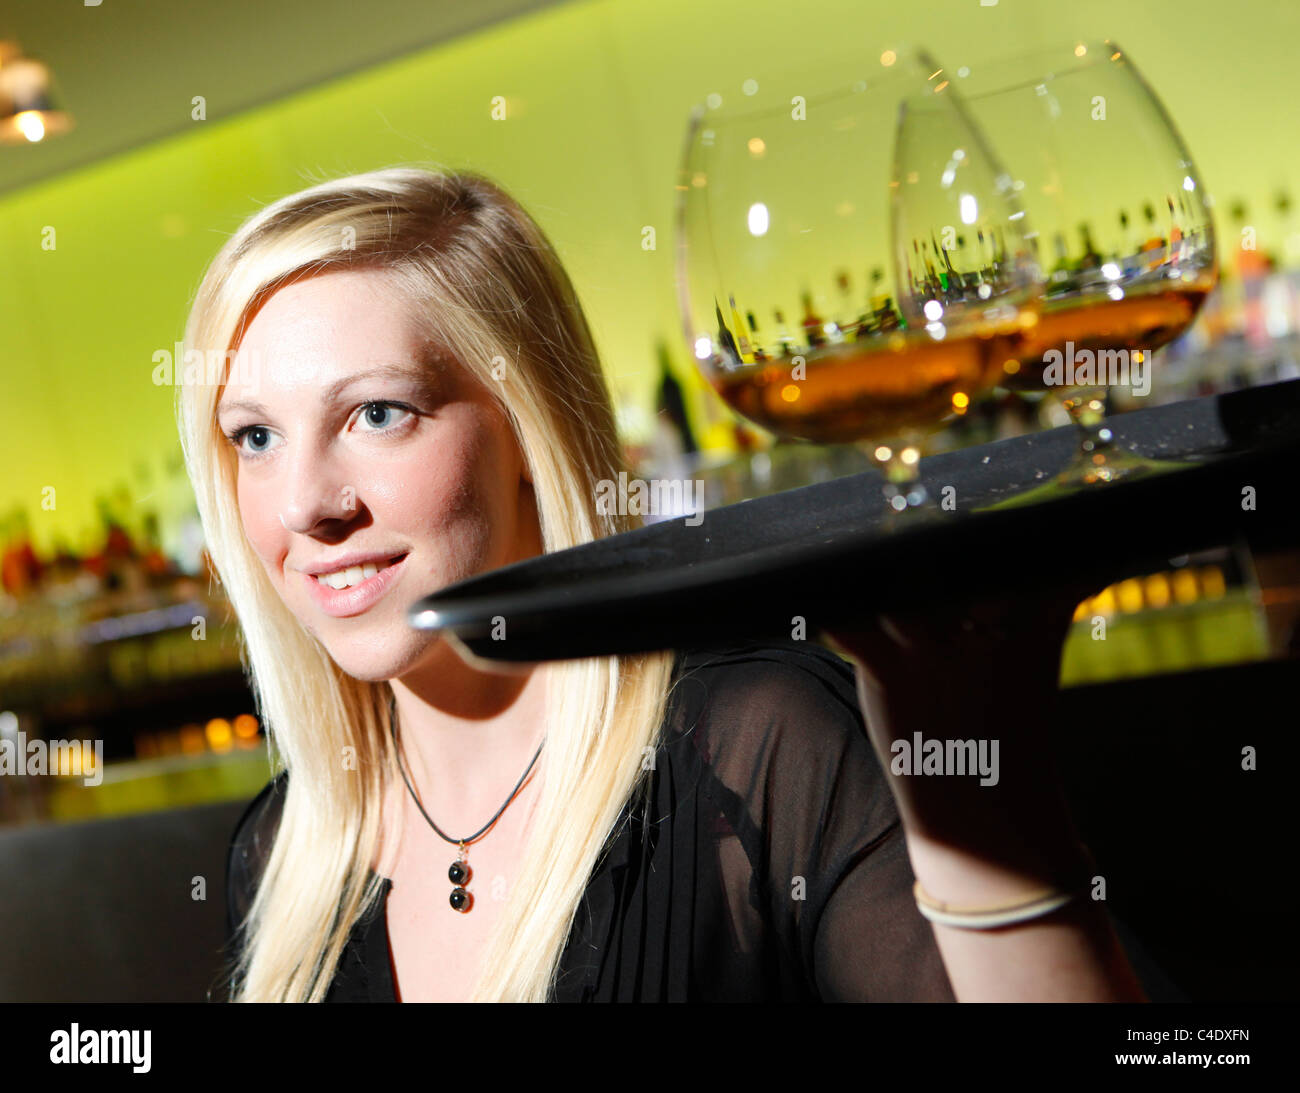 Waitress in a cocktail bar carrying a tray of brandy balloon glasses - Stock Image